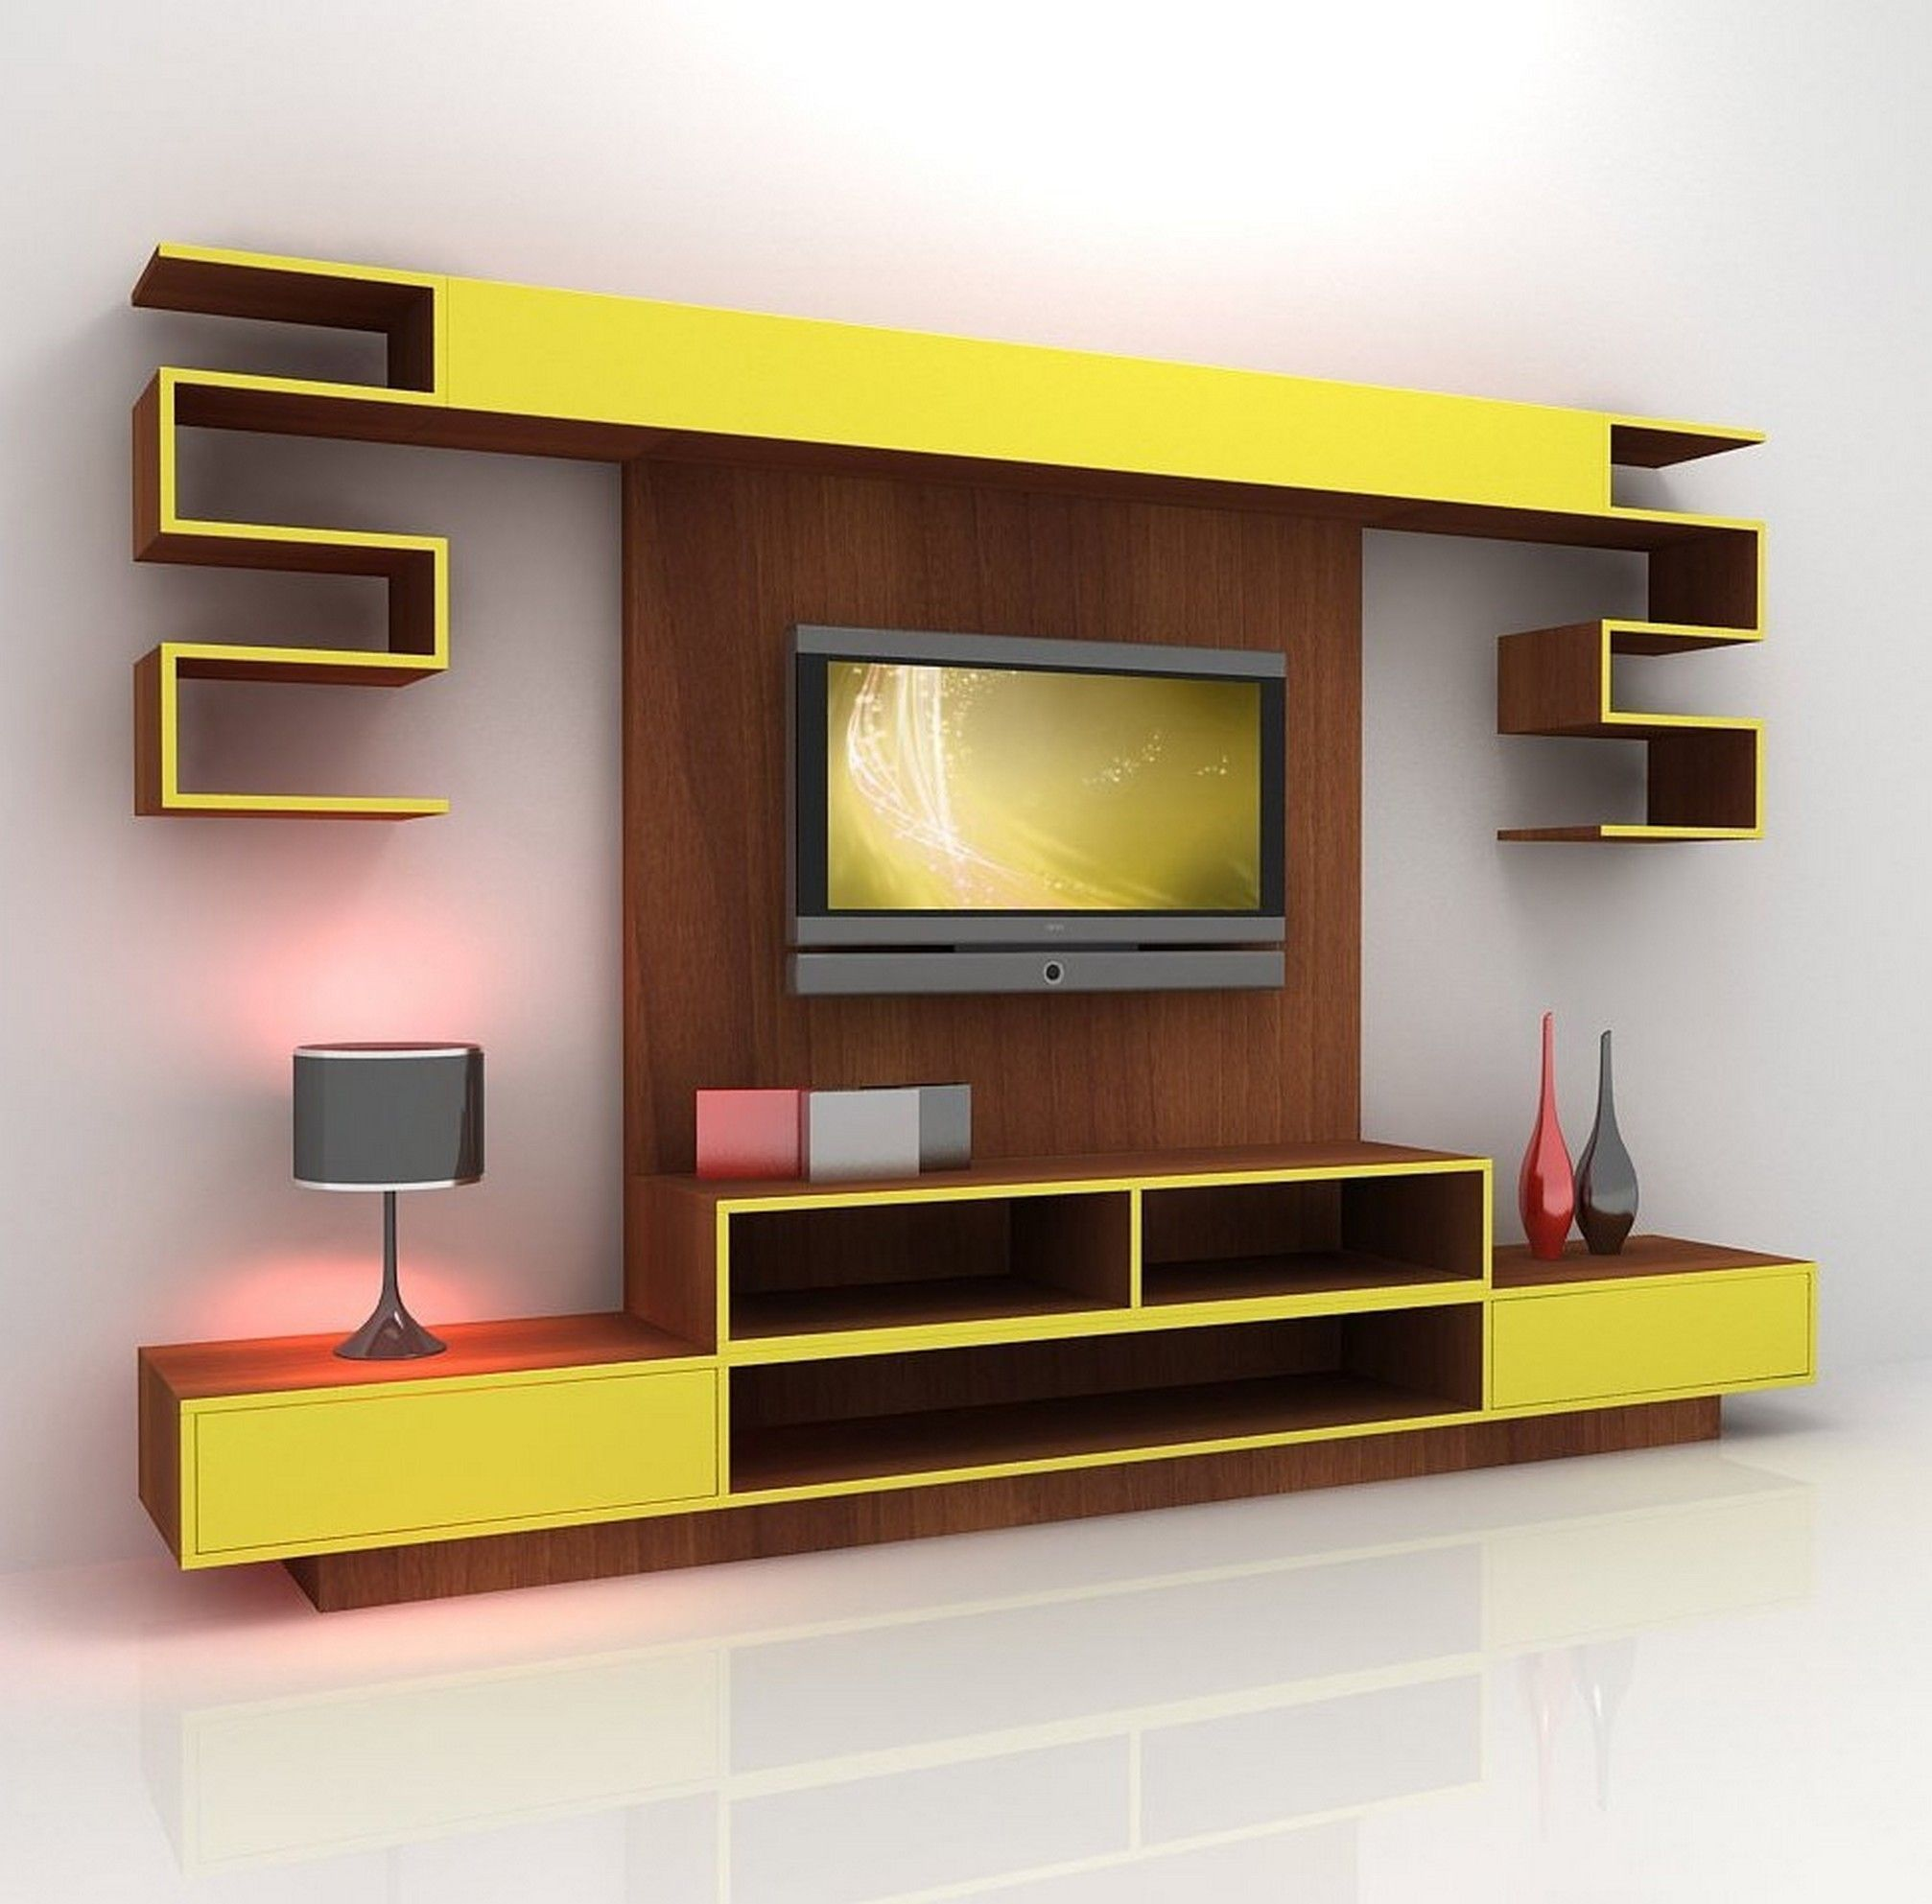 Furniture Interior Wall Mounted Wide Screen Tv On Contemporary Yellow Wooden Display Shelves Wall Mo Tv Wall Shelves Modern Tv Wall Units Tv Wall Mount Designs